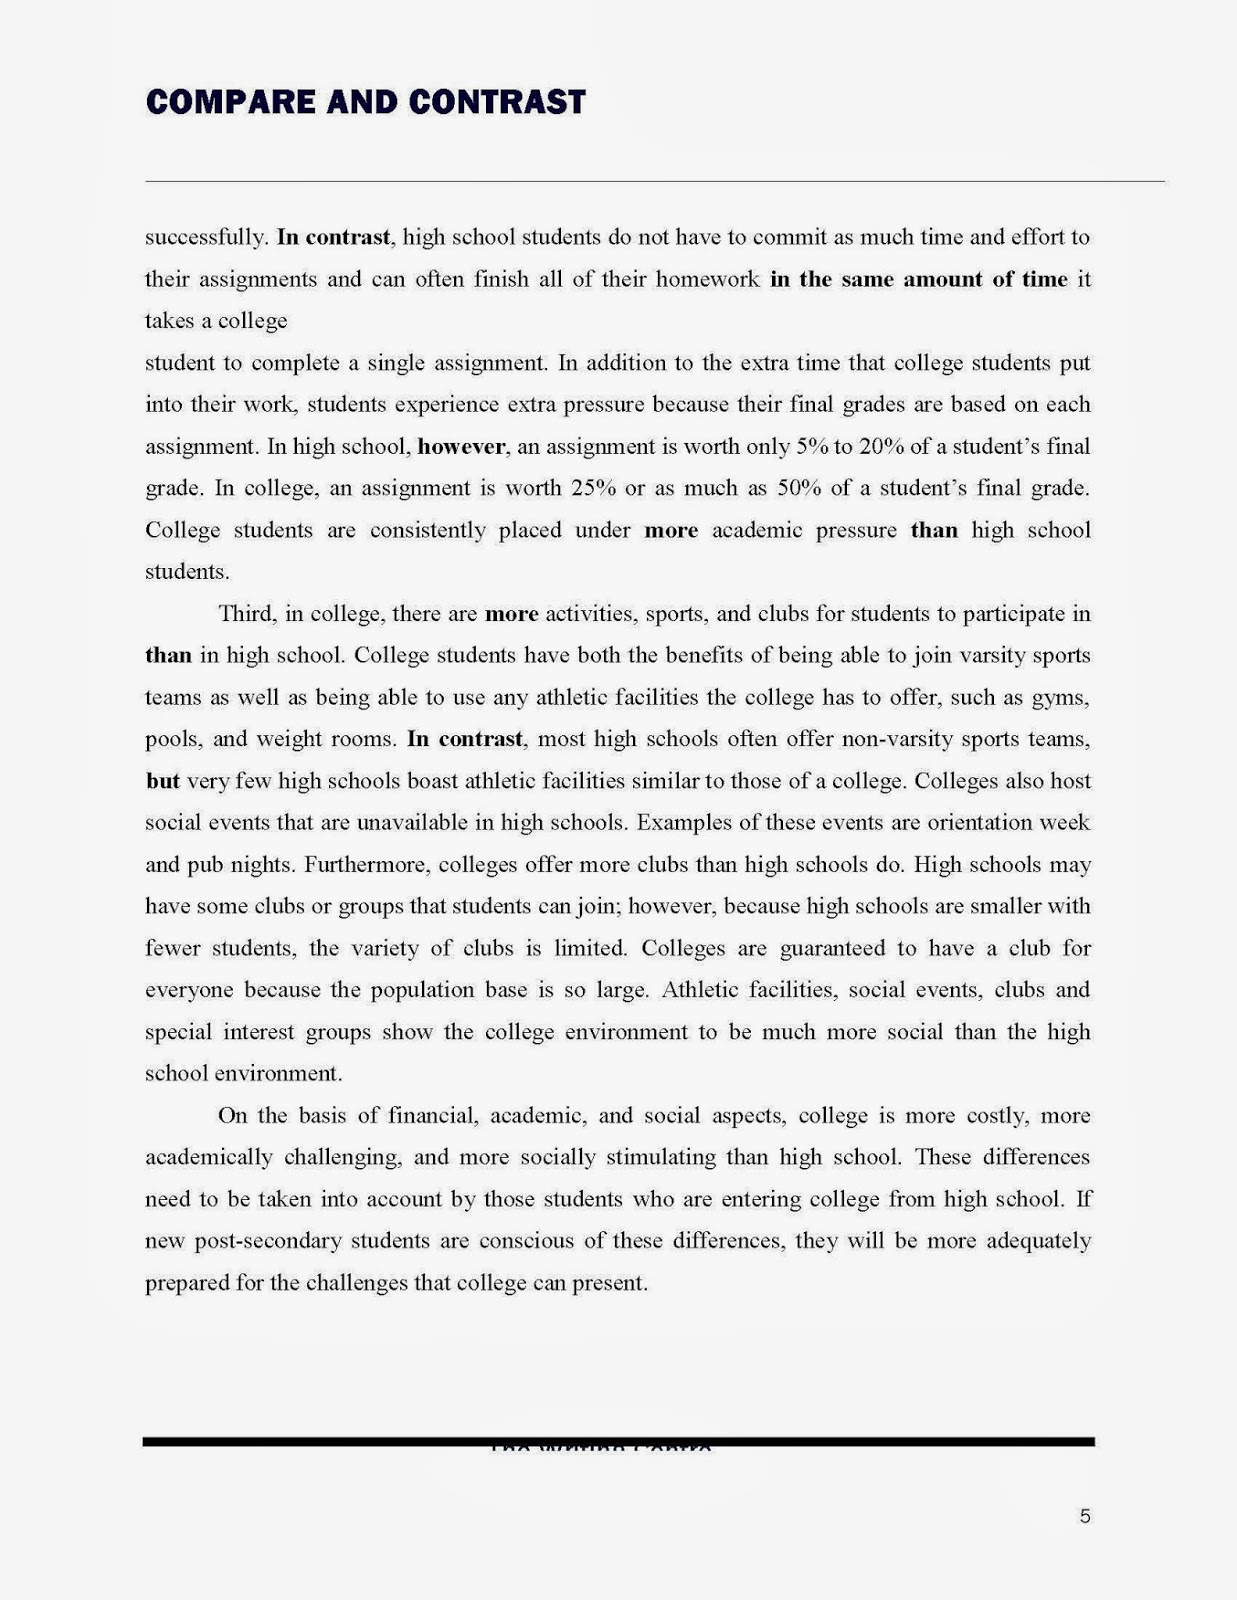 college vs high school essay compare and contrast written essay  essay on the giver by lois lowry essay on the book the giver by compare and examples of high school